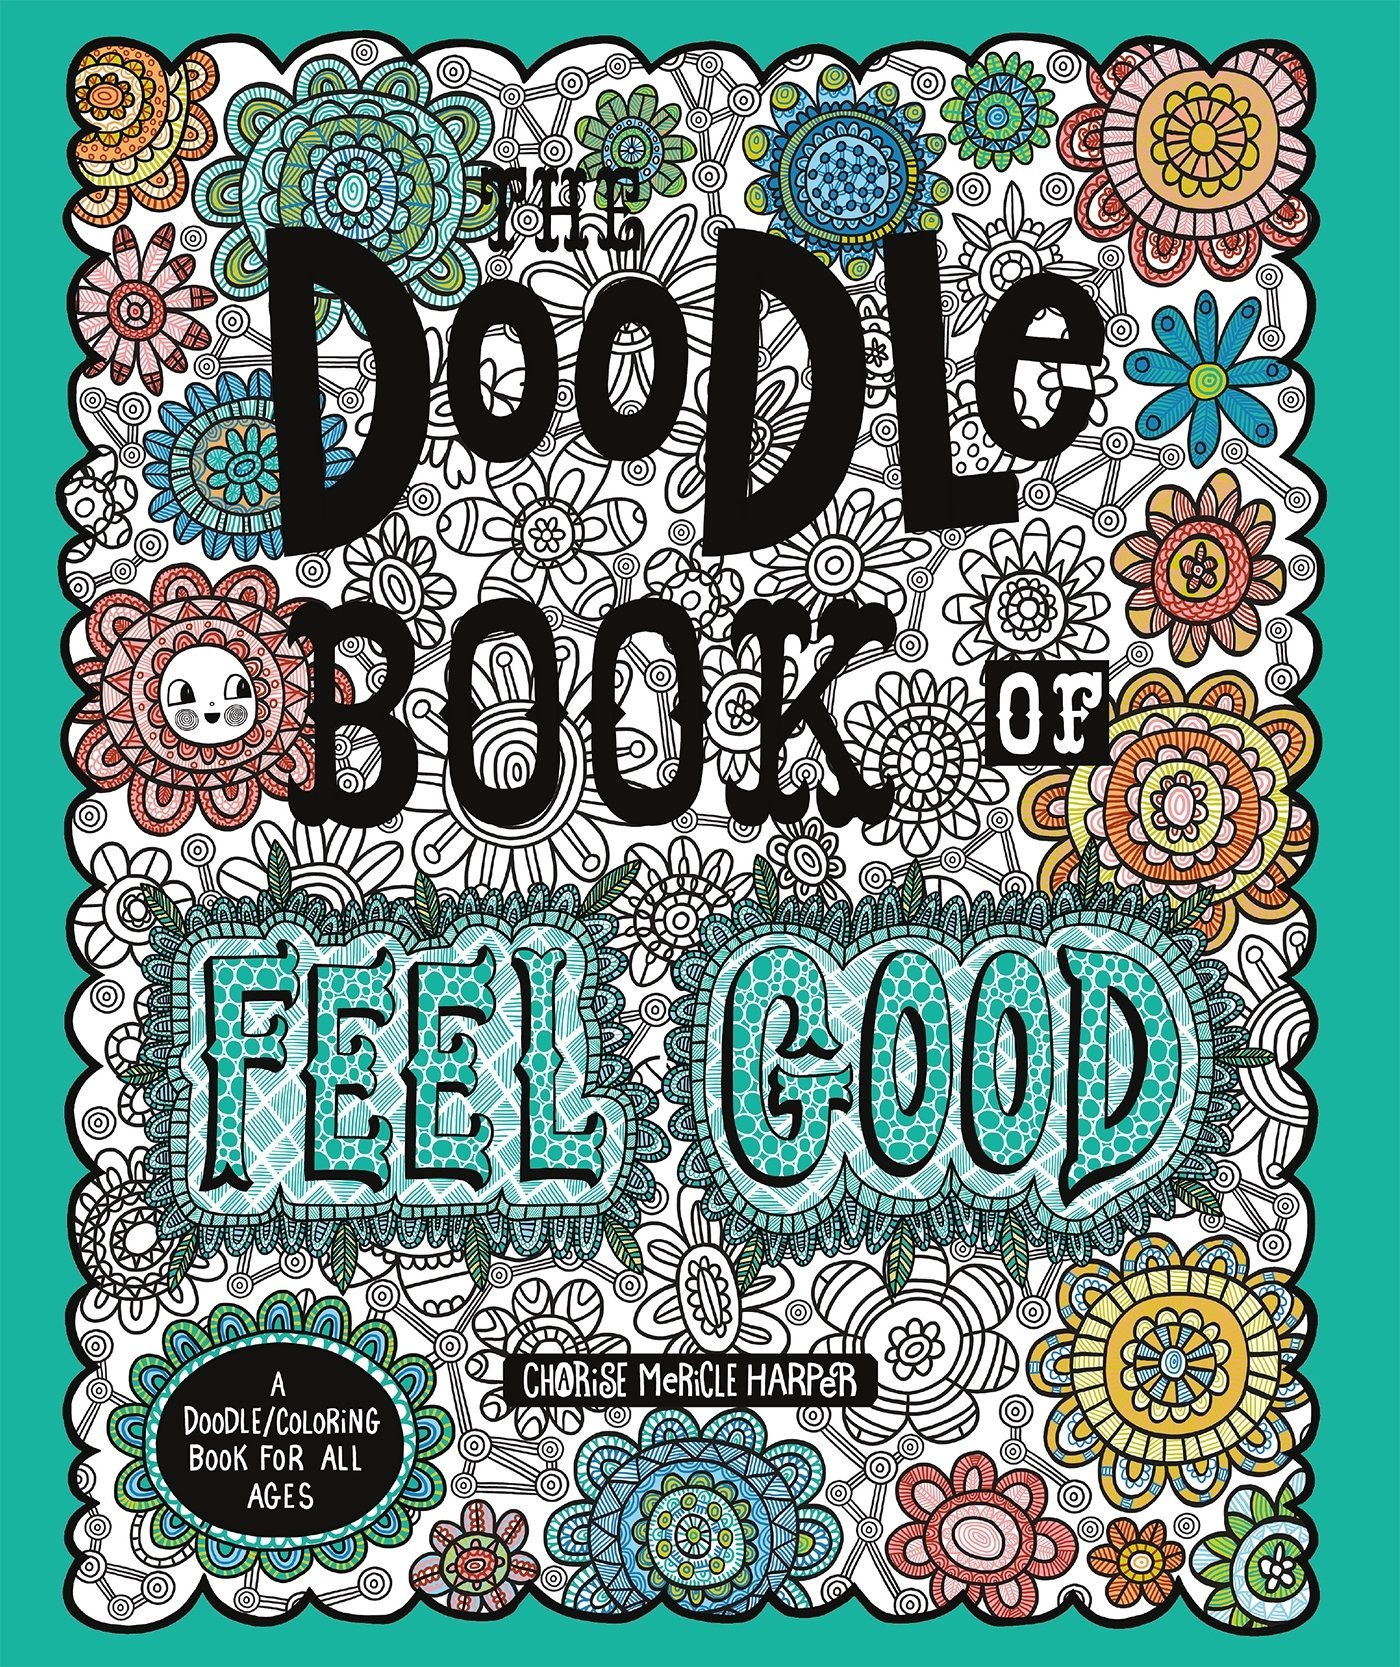 The Doodle Book Of Feel Good A Coloring For All Ages Charise Mericle Harper 9781250120830 Amazon Books